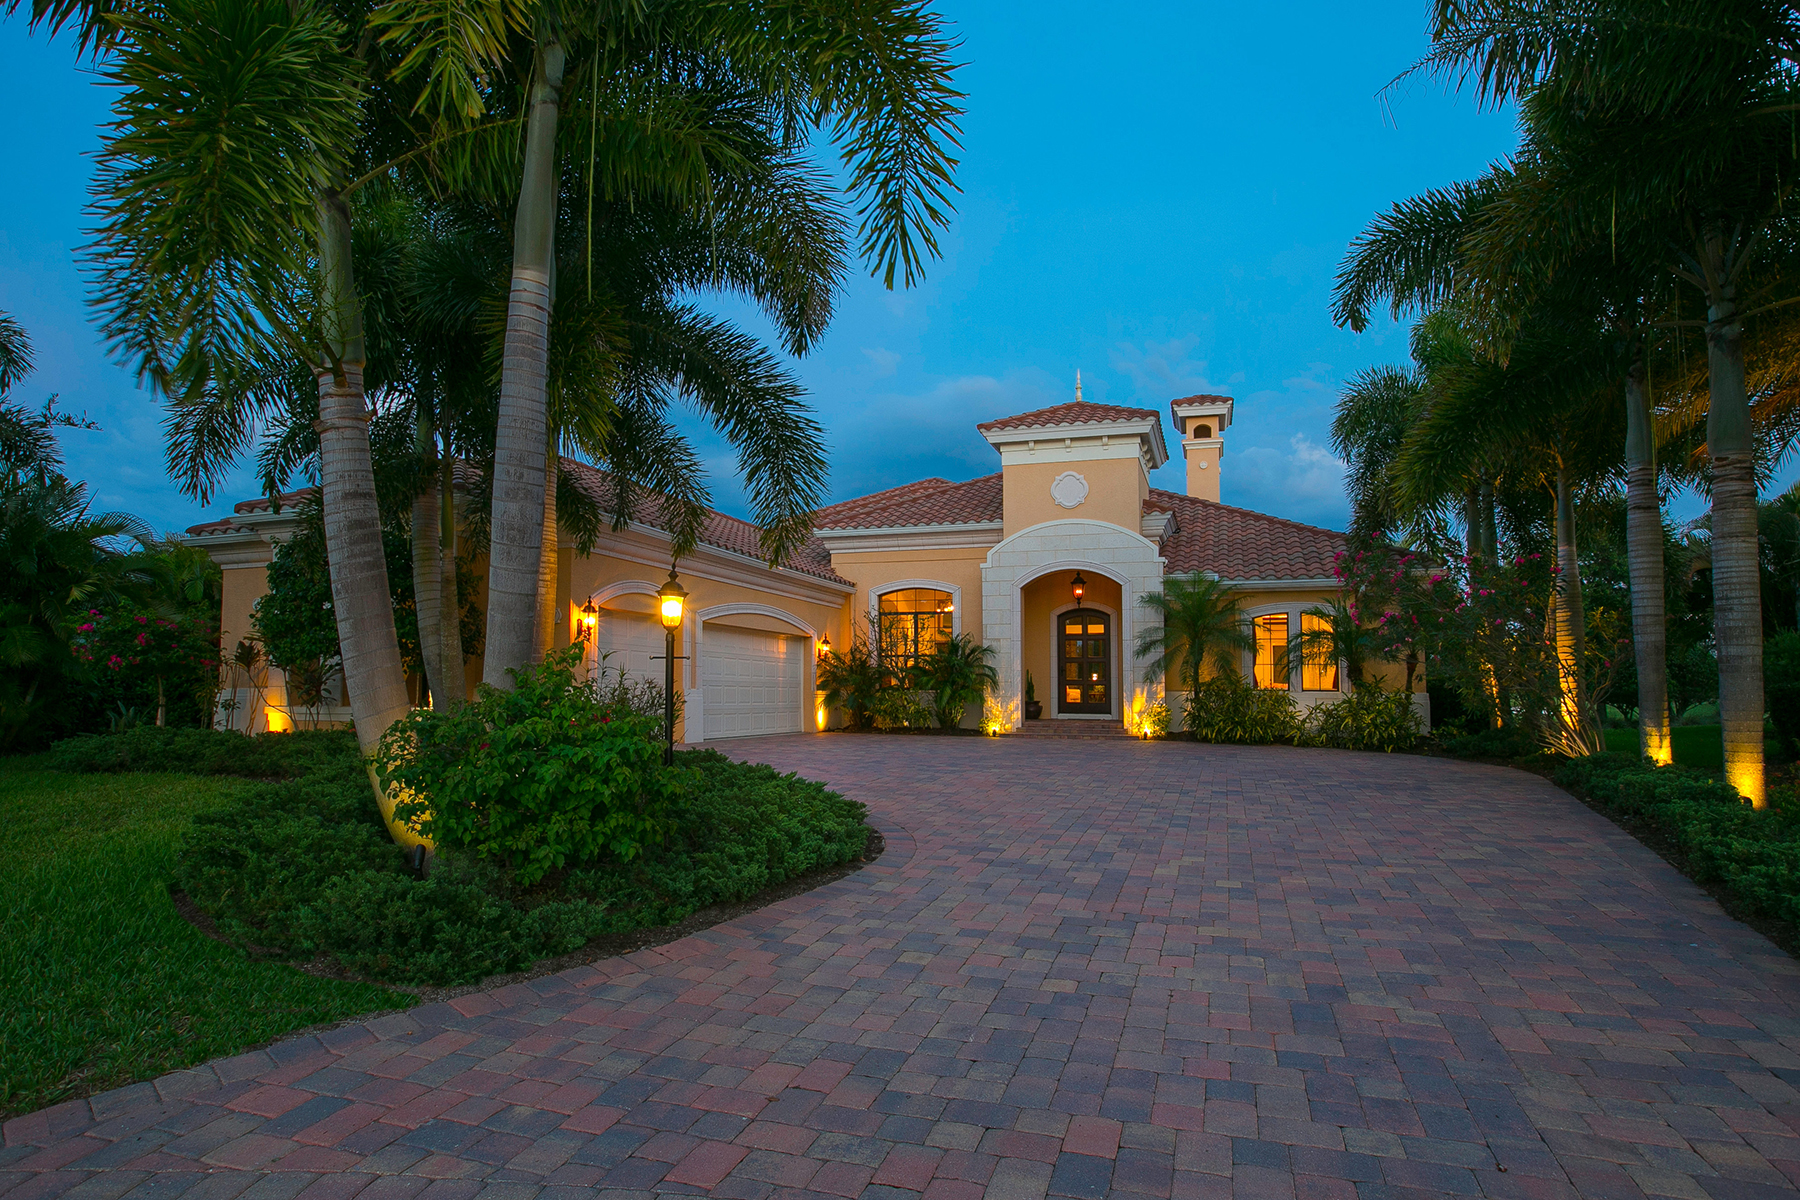 Villa per Vendita alle ore LAKEWOOD RANCH COUNTRY CLUB 7327 Greystone St Lakewood Ranch, Florida 34202 Stati Uniti